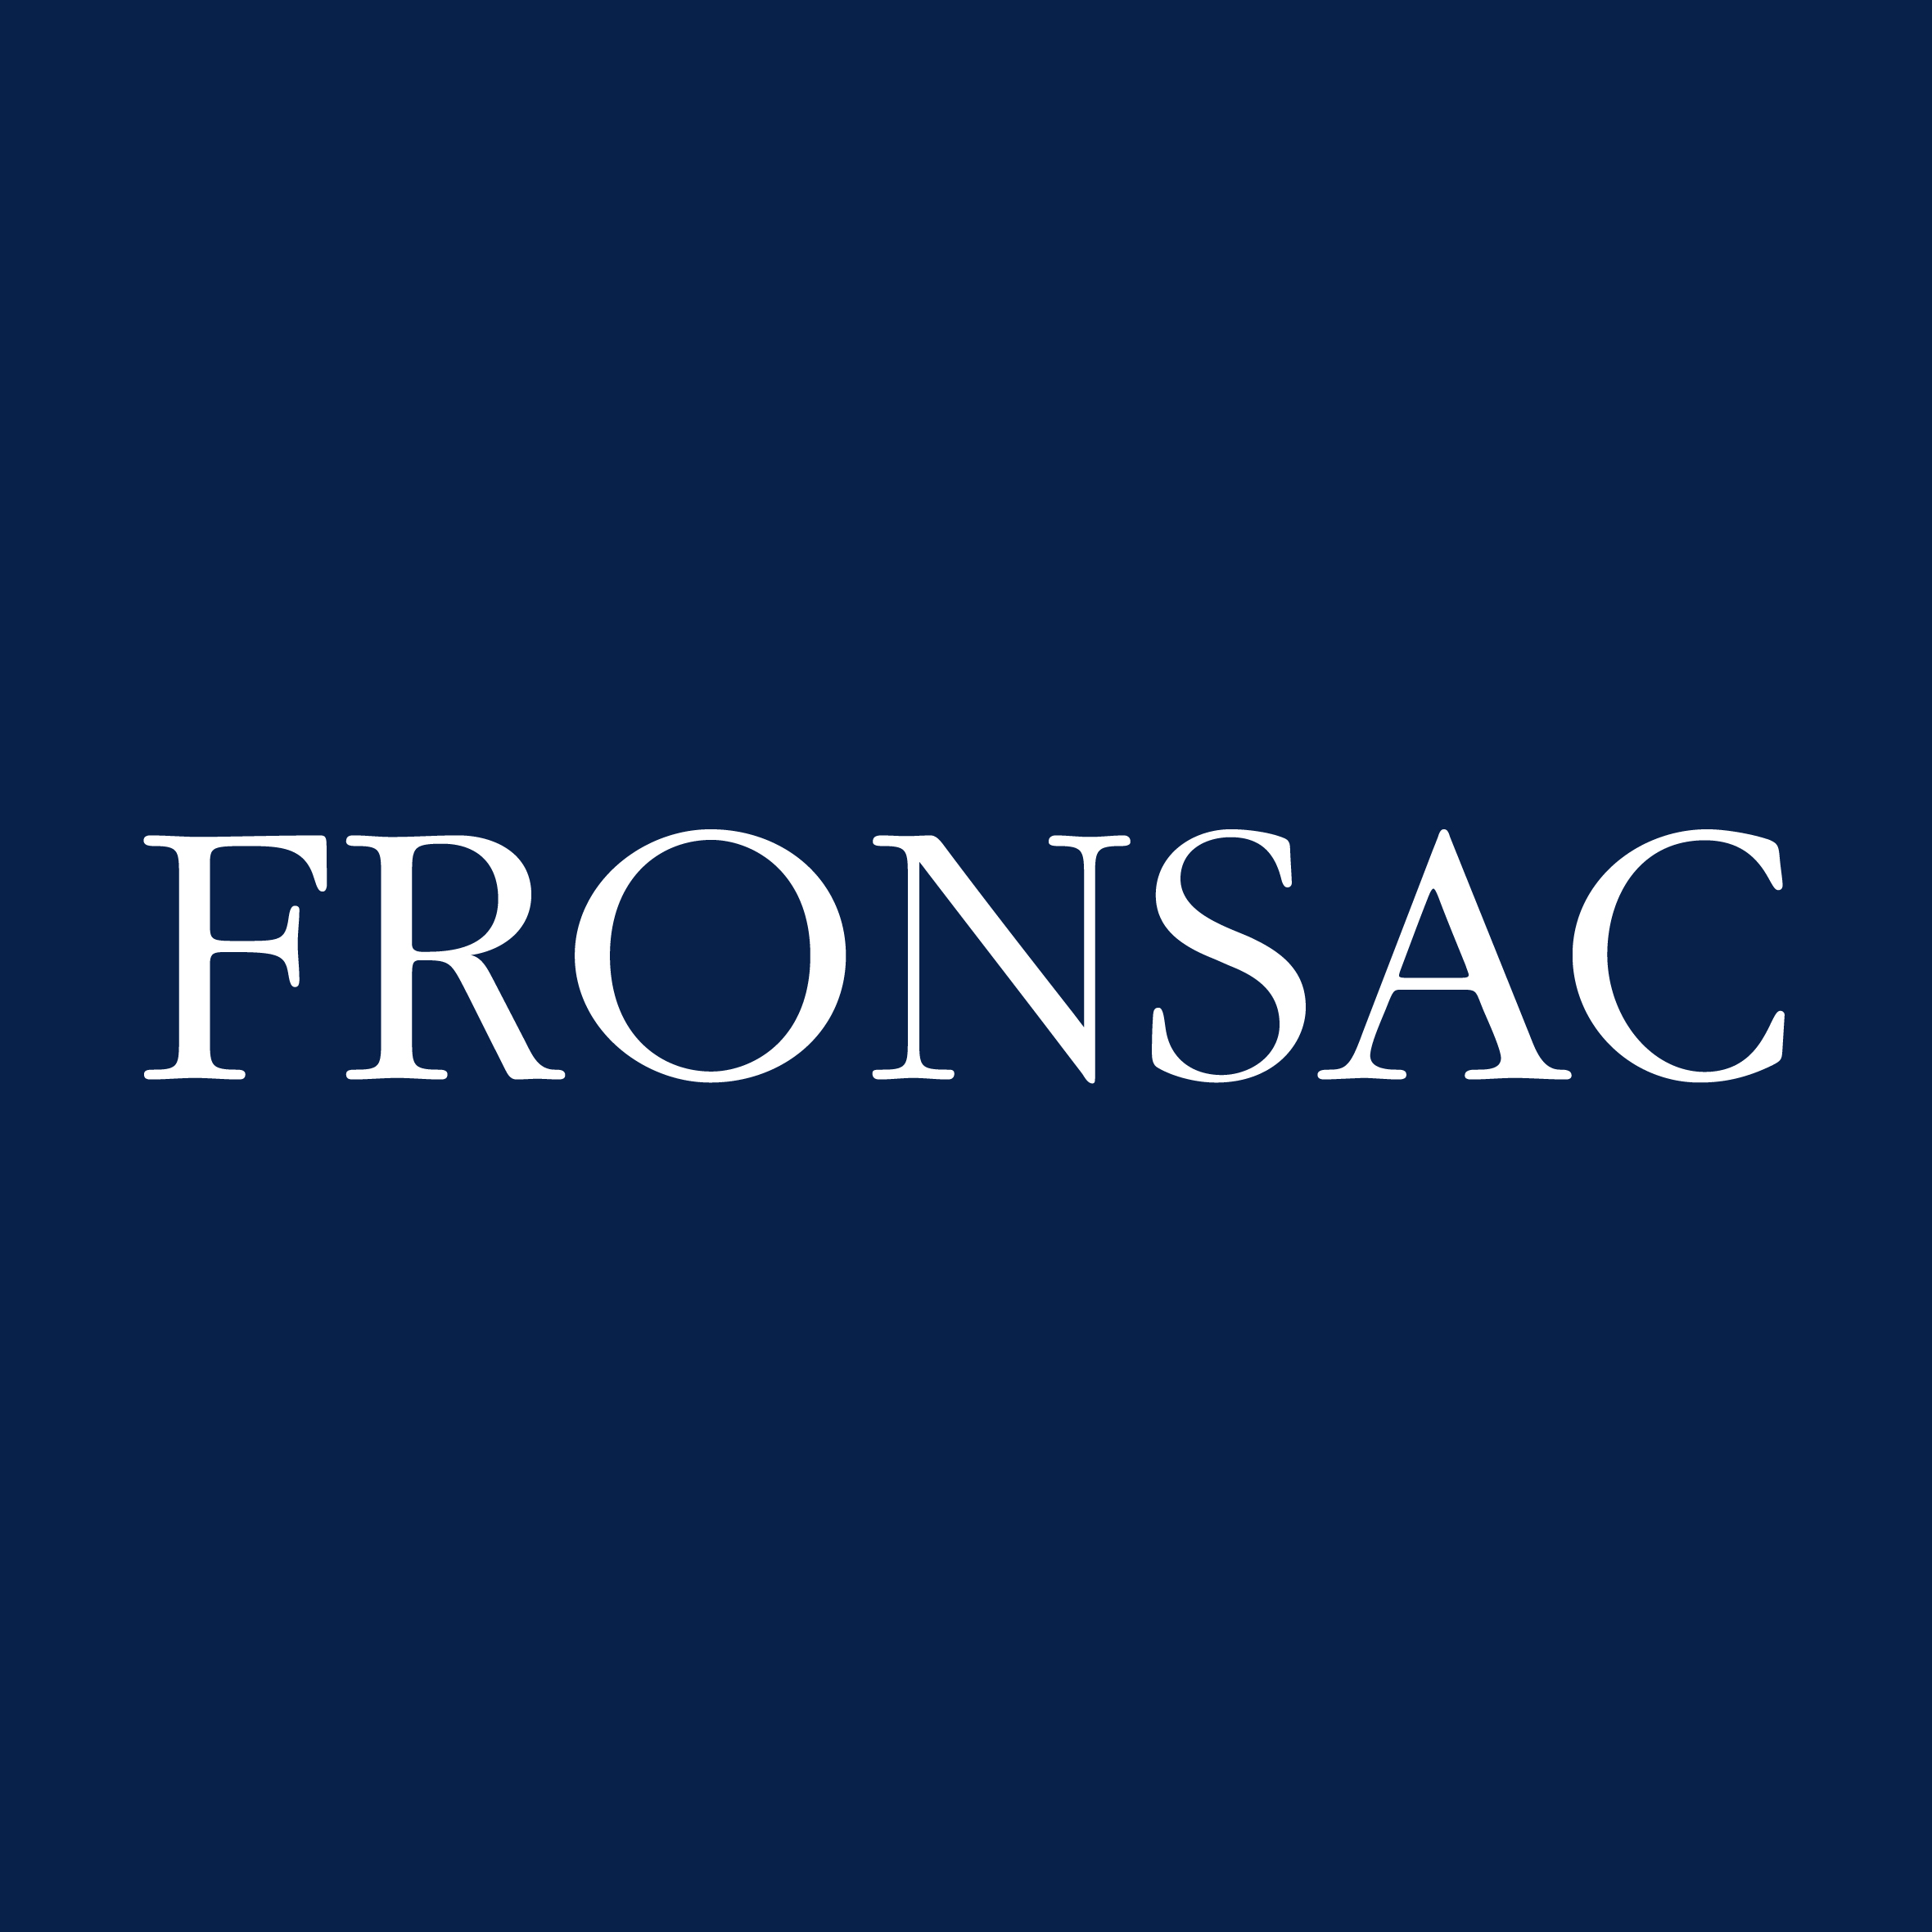 Fronsac Announces the Closing of Its Fully-Subscribed Public Offering of Units and the Exercise by the Agents of the Over-Allotment Option in Full